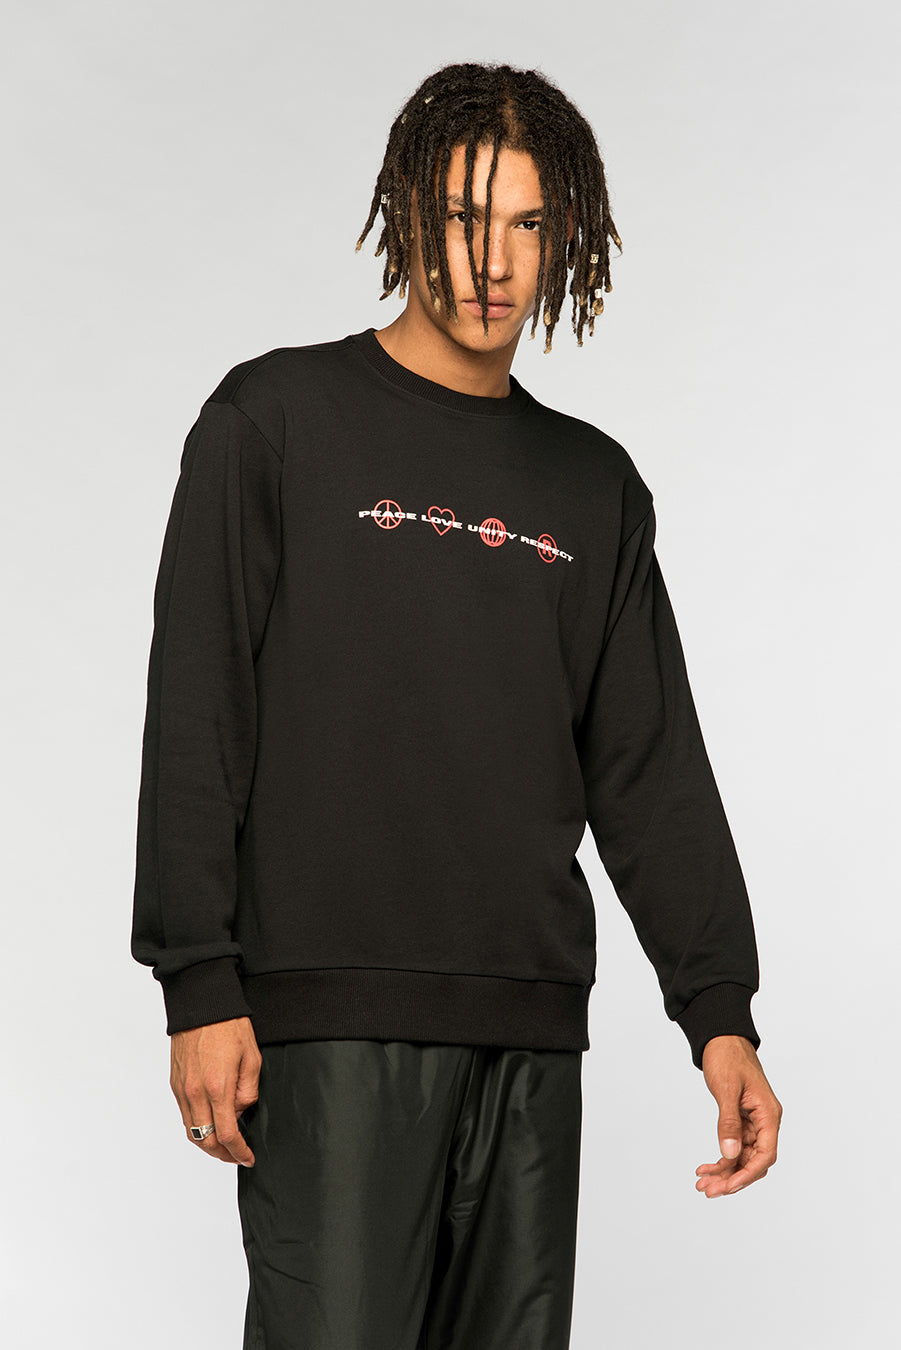 new_future_london_plur_sweatshirt_black_5-1.jpg